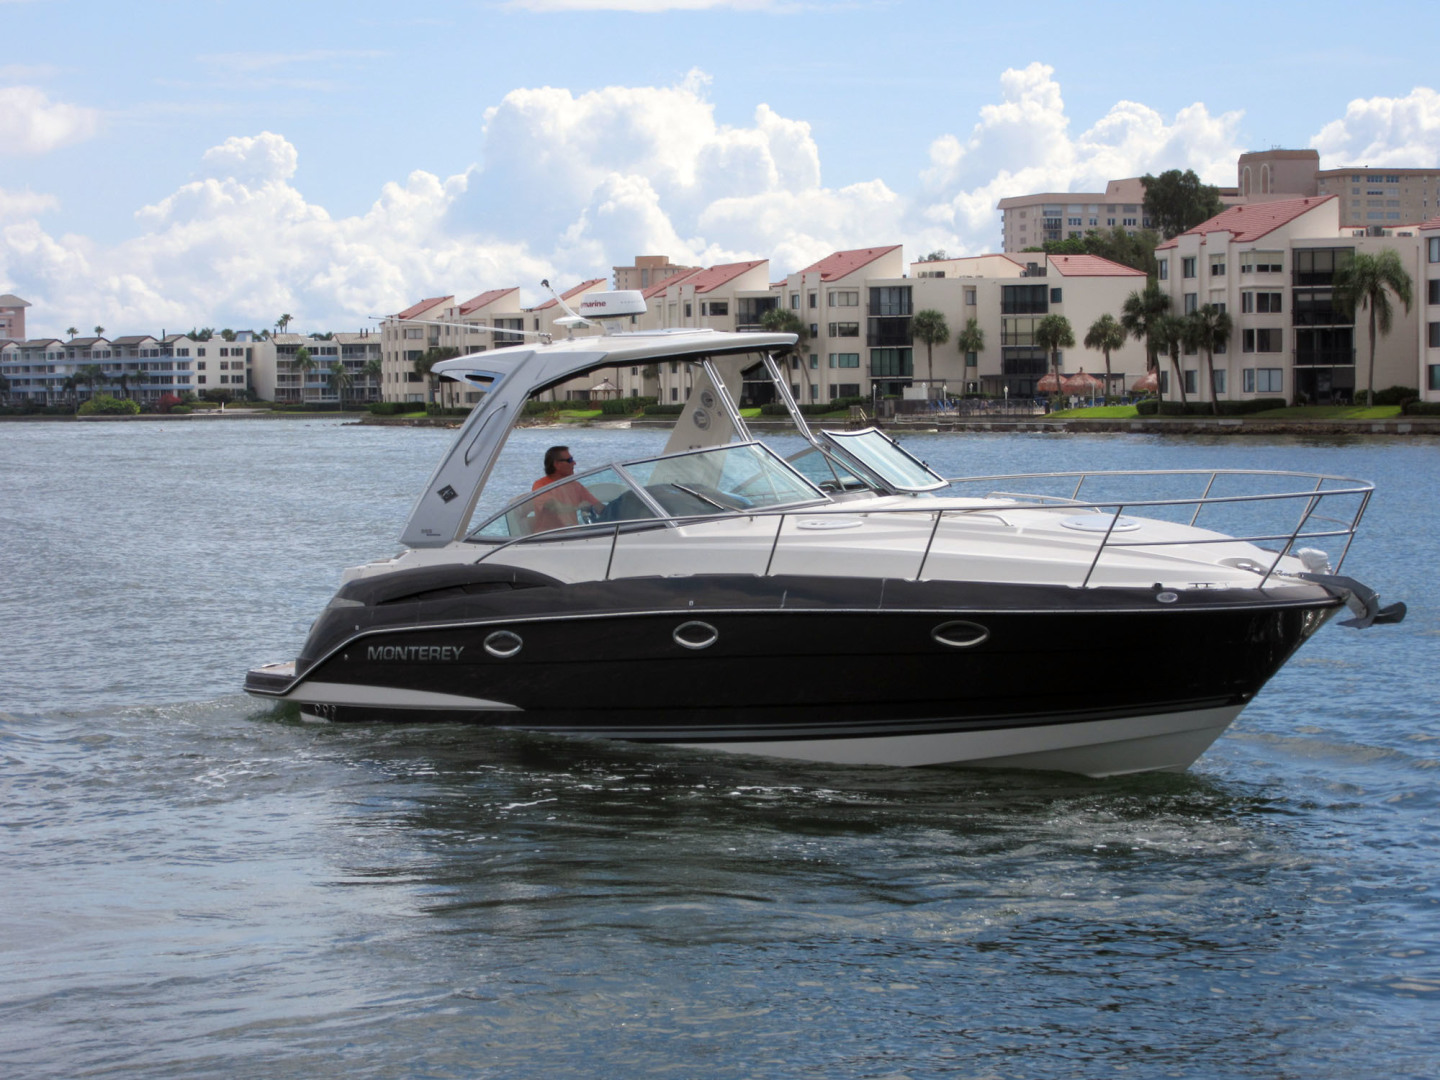 Monterey-355 Sport Yacht 2014-Sunset Serenity St. Petersburg-Florida-United States-Starboard Side-1498625 | Thumbnail